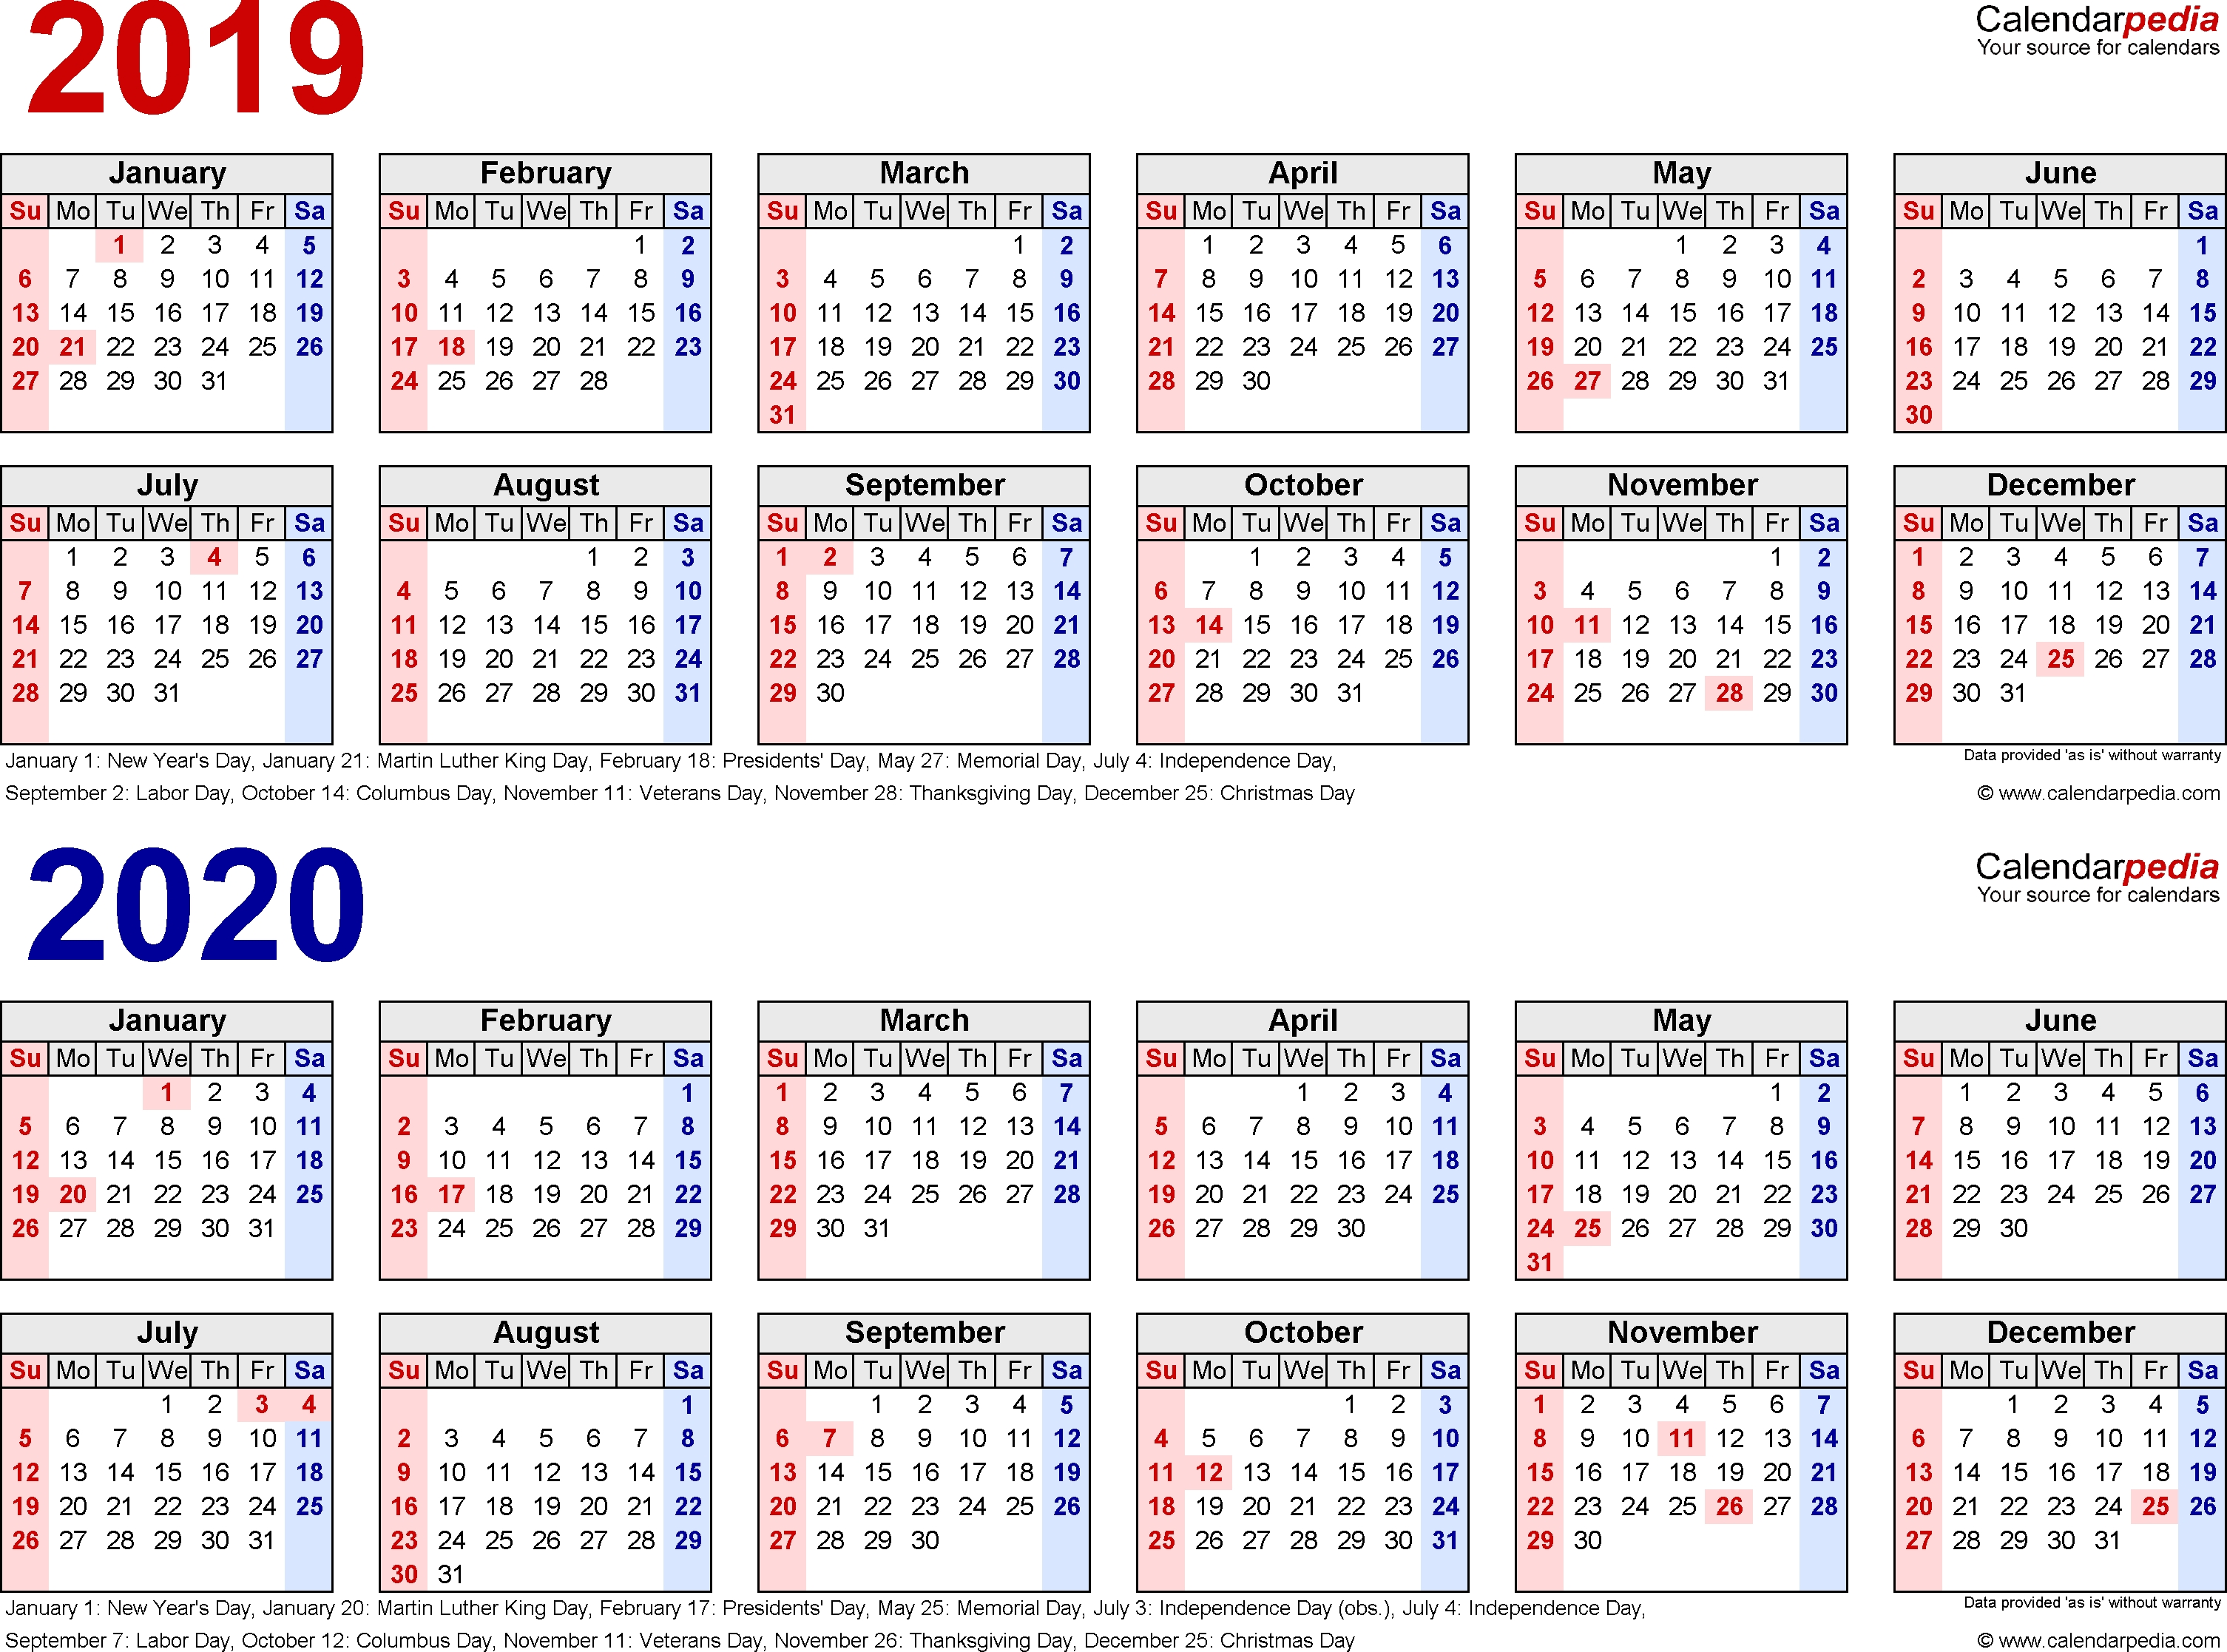 2019-2020 Calendar - Free Printable Two-Year Pdf Calendars in July 2019 June 2020 Calendar